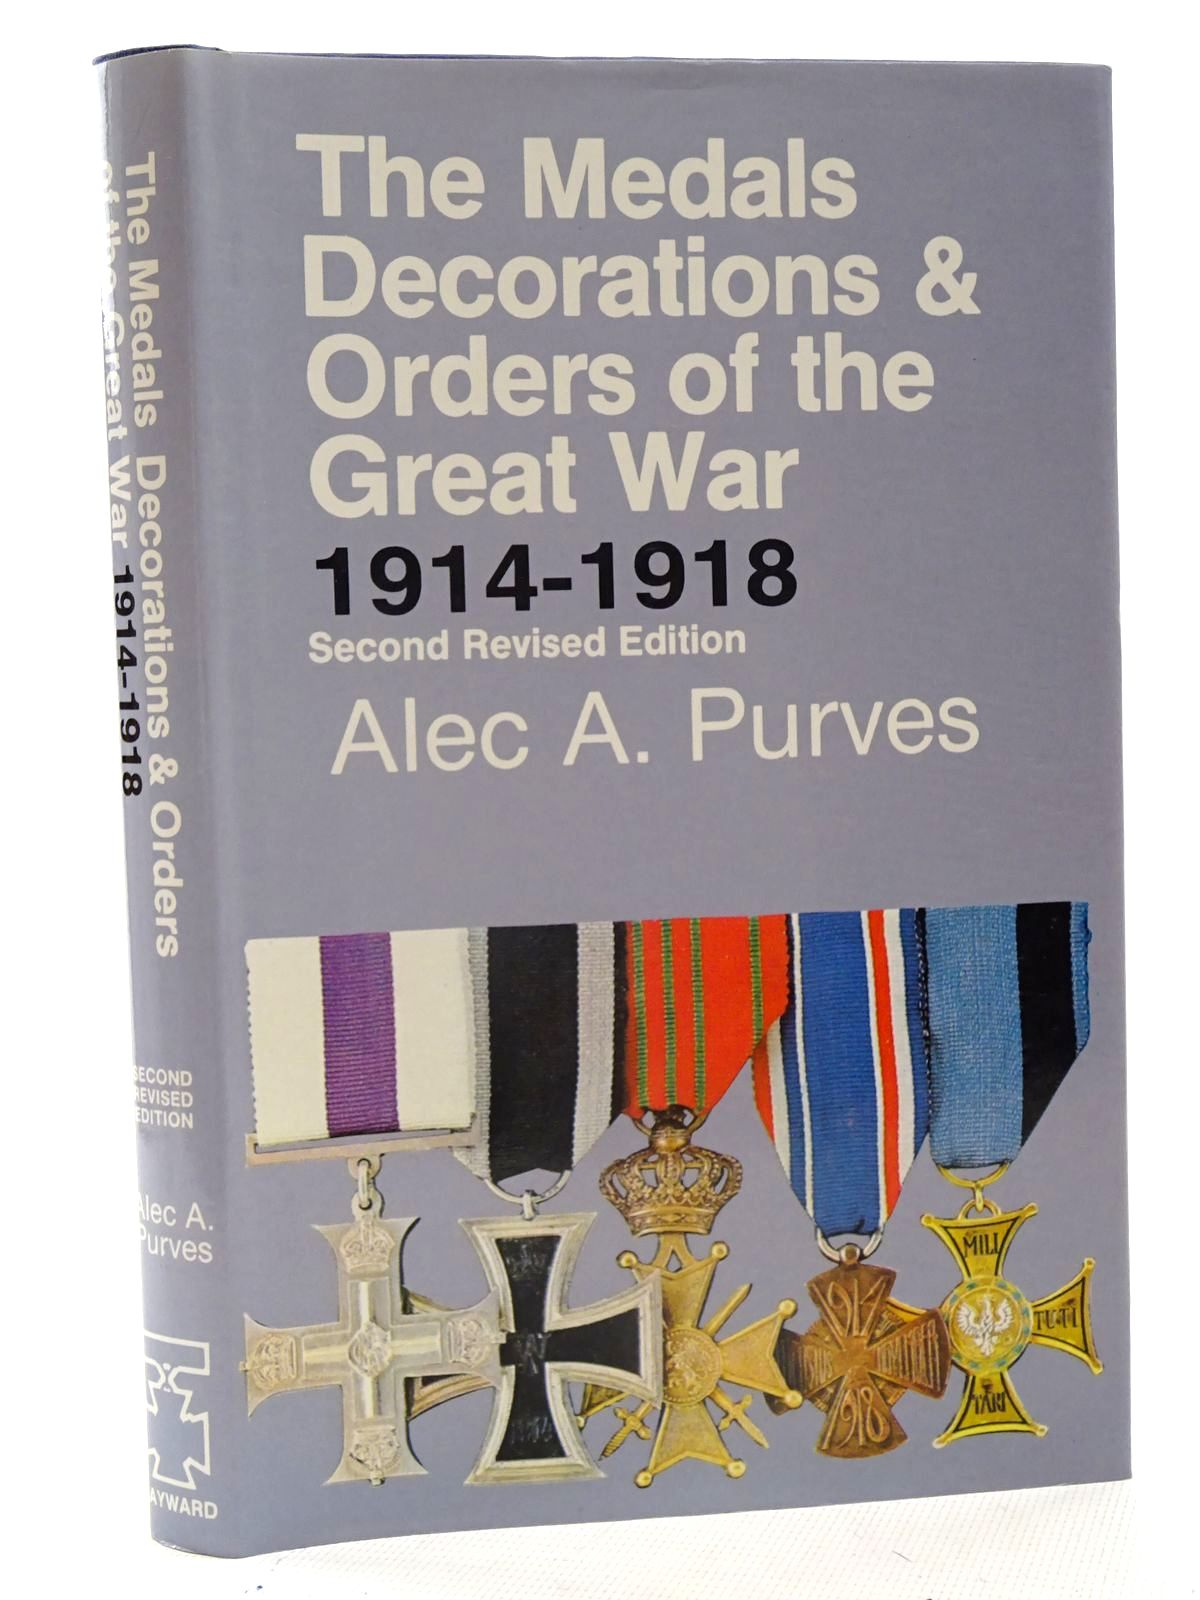 Photo of THE MEDALS DECORATIONS & ORDERS OF THE GREAT WAR 1914-1918 written by Purves, Alec A. published by J.B. Hayward & Son (STOCK CODE: 2125716)  for sale by Stella & Rose's Books